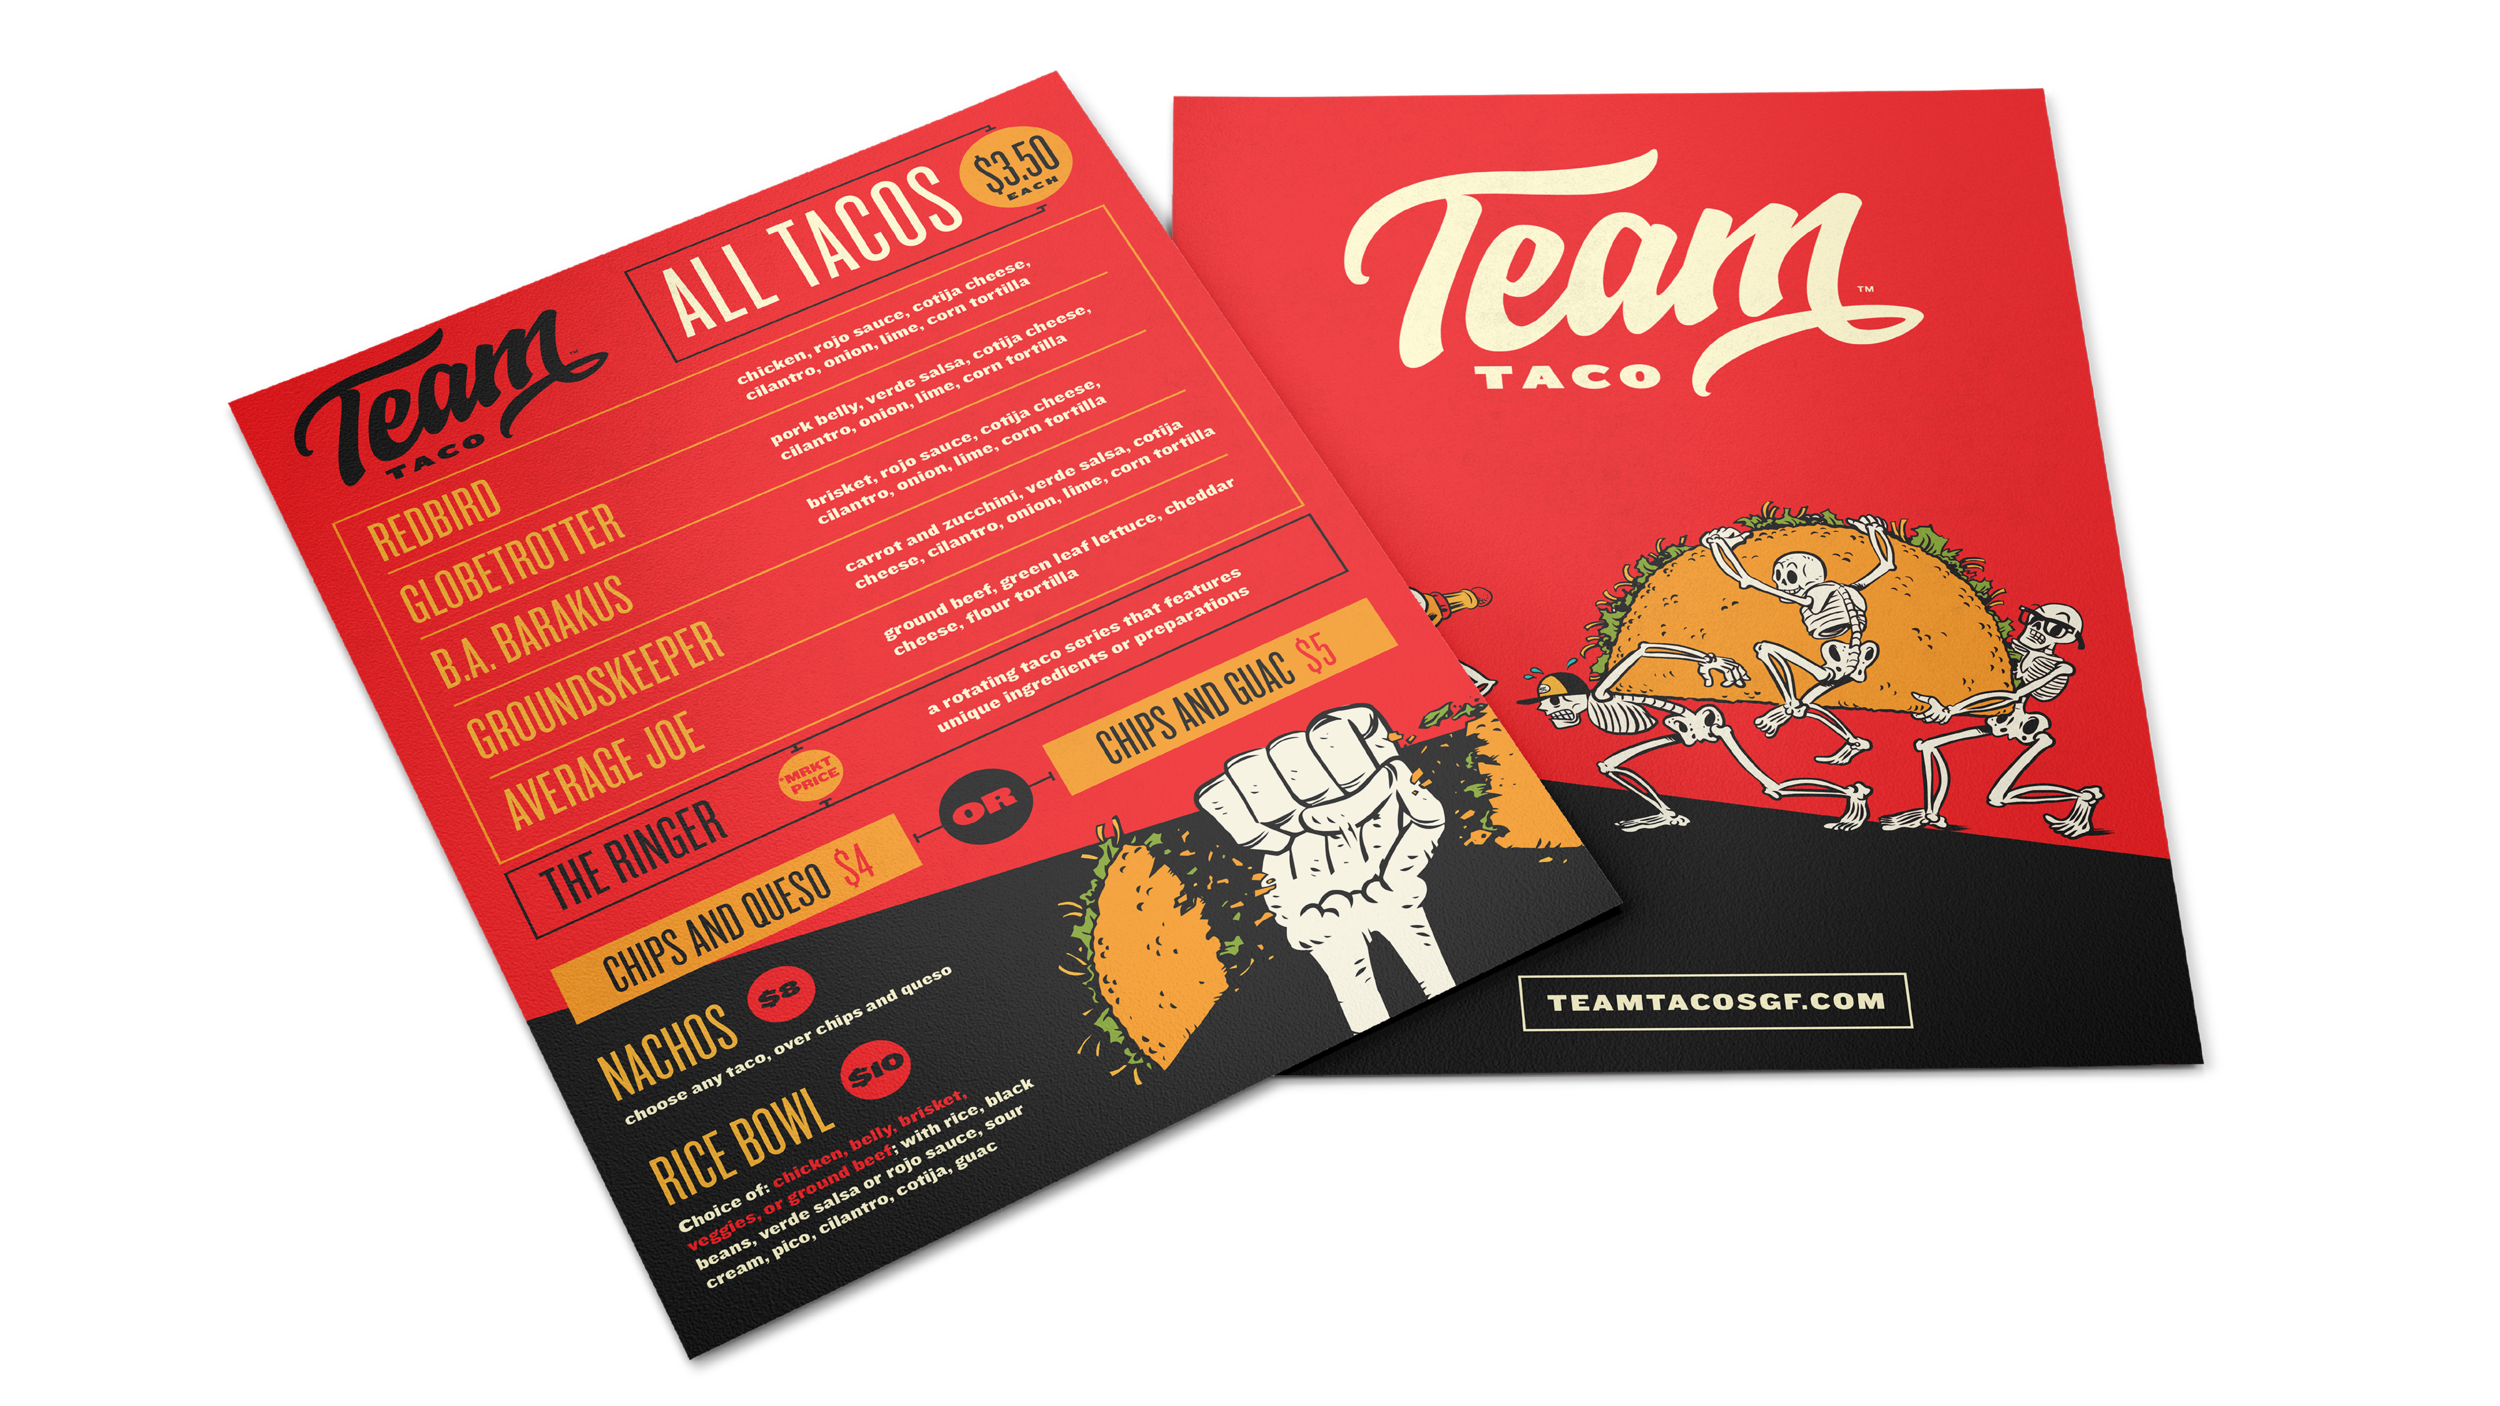 MENUS, MERCH, AND MORE - Team Taco has a big personality in a little space. We created menus, signage, merchandise and more to make every touchpoint in the restaurant feel touched and considered.